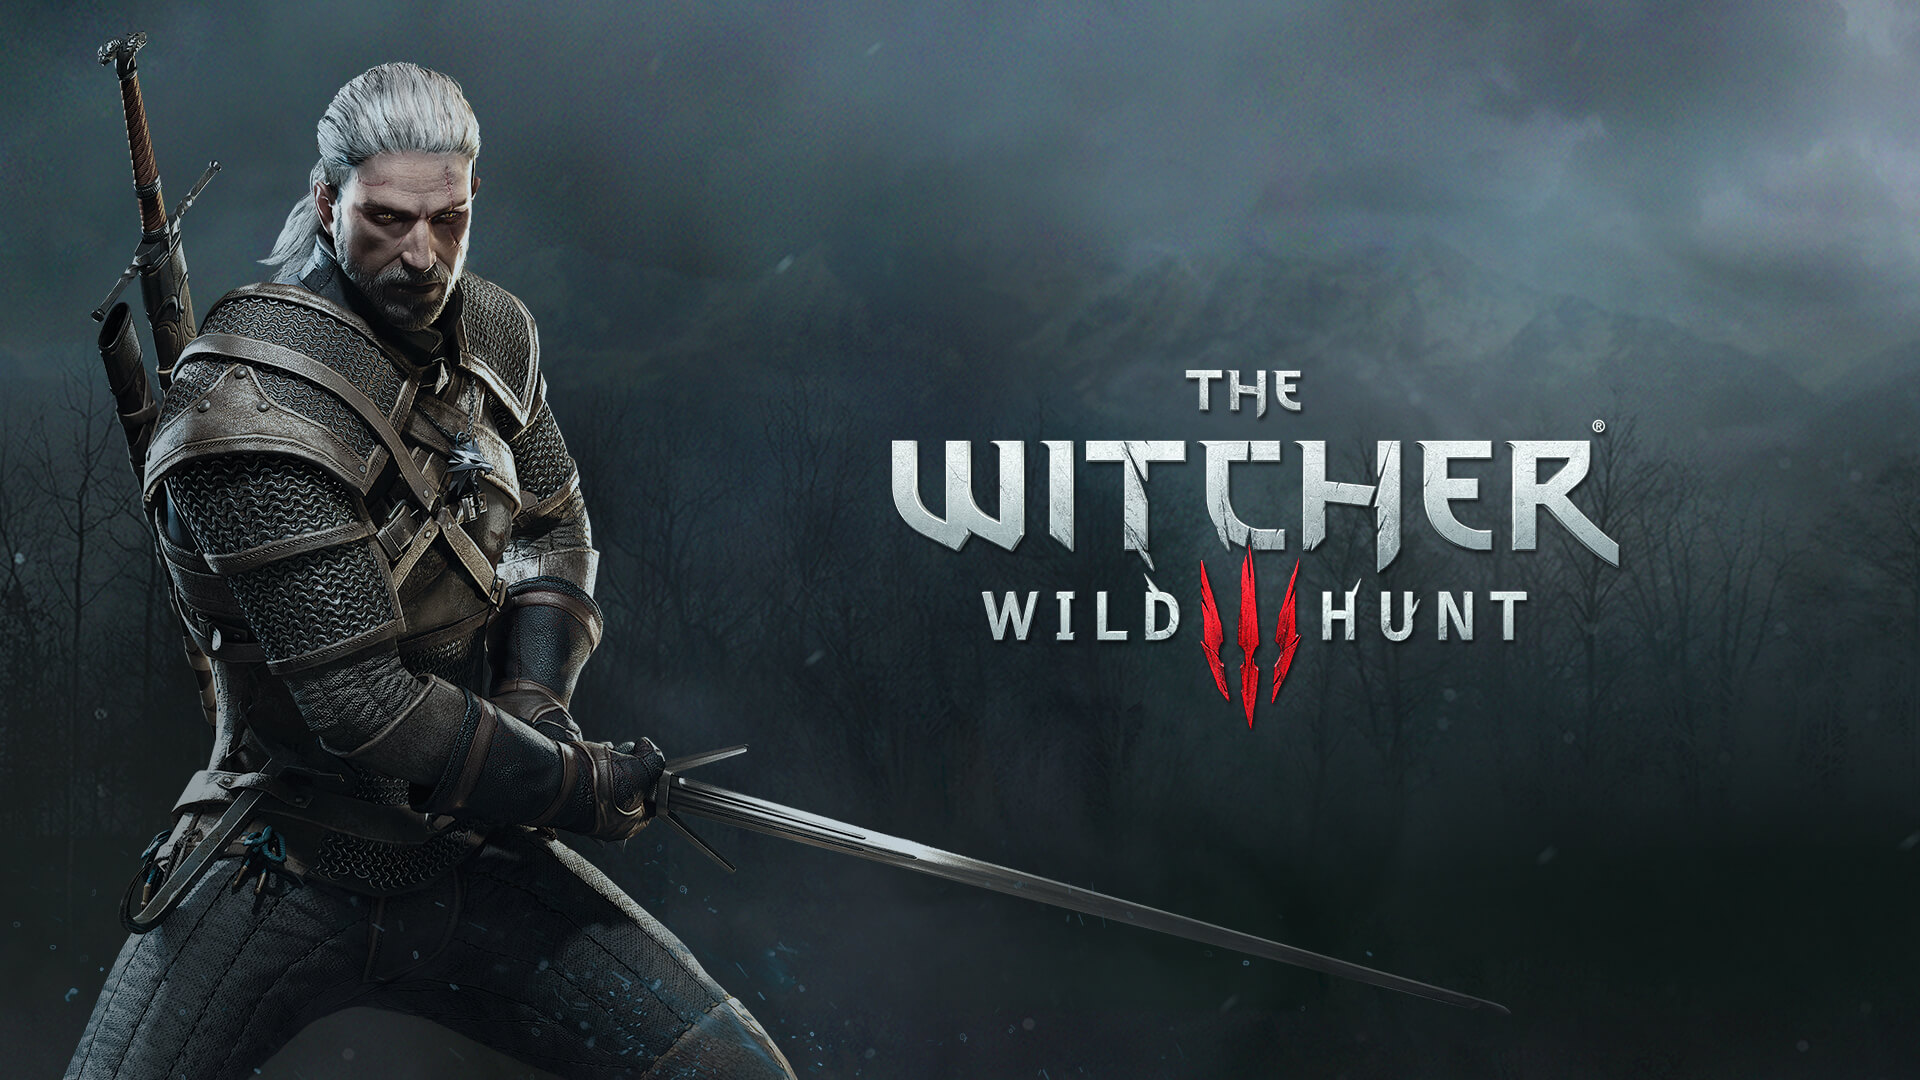 The Witcher 3 Patch 1.08 Available Now